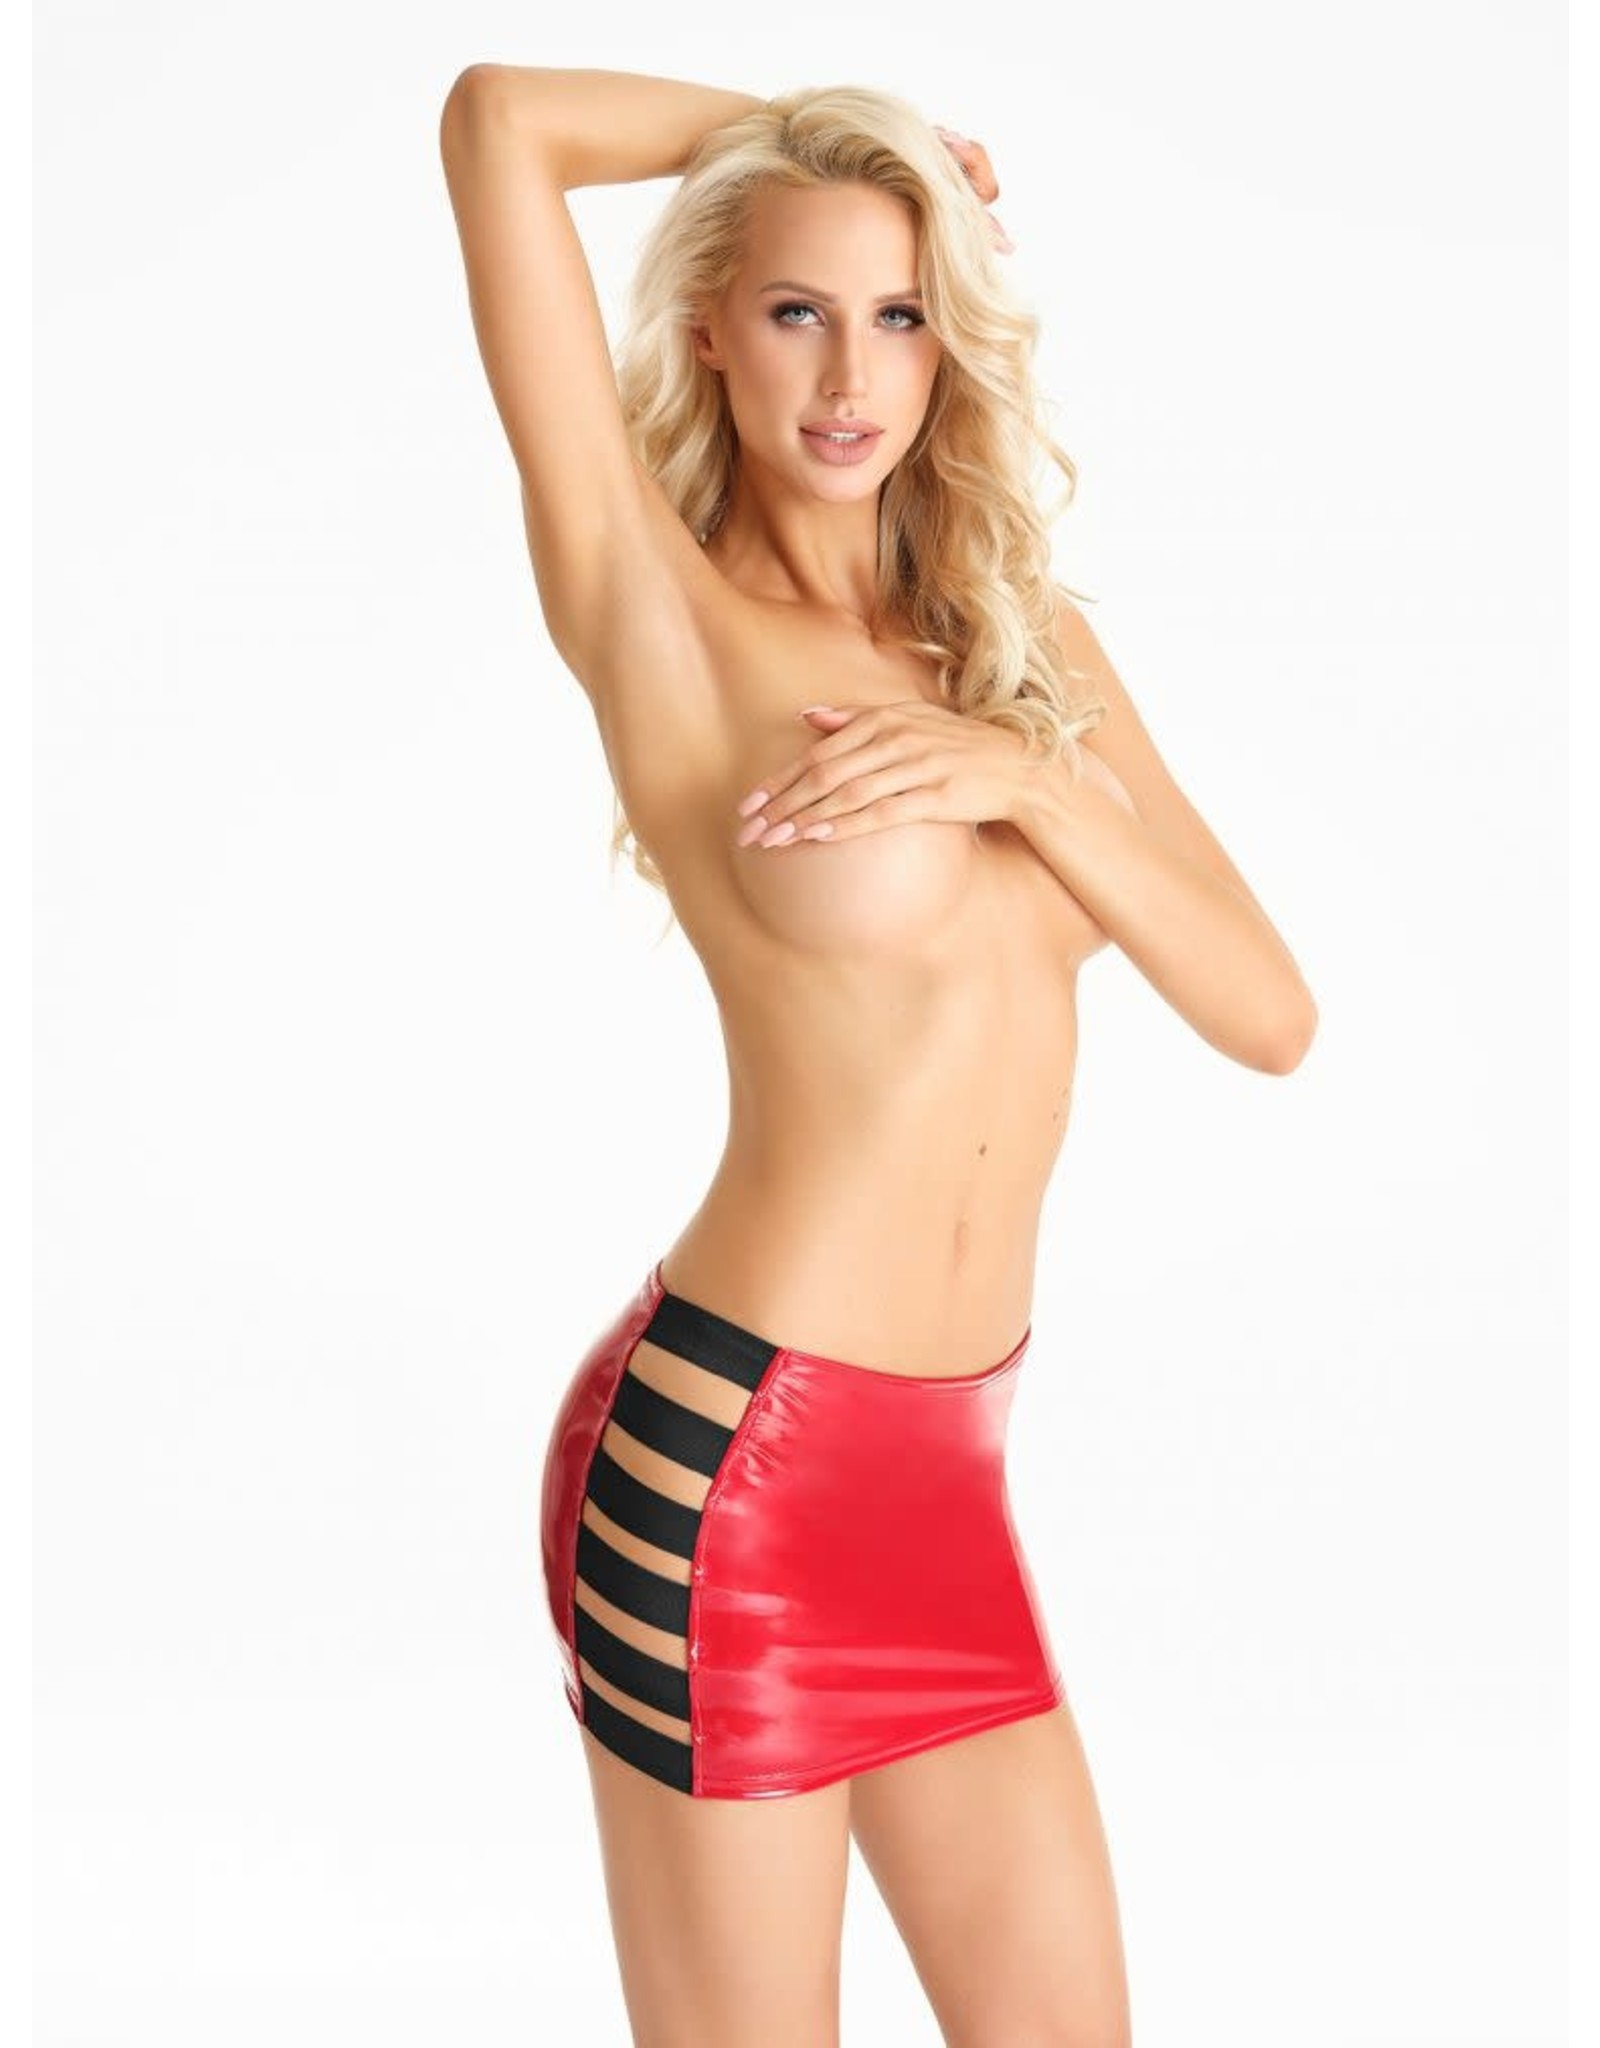 7 HEAVEN - RED MINI-SKIRT WITH ELASTIC SIDES - RED - X-LARGE